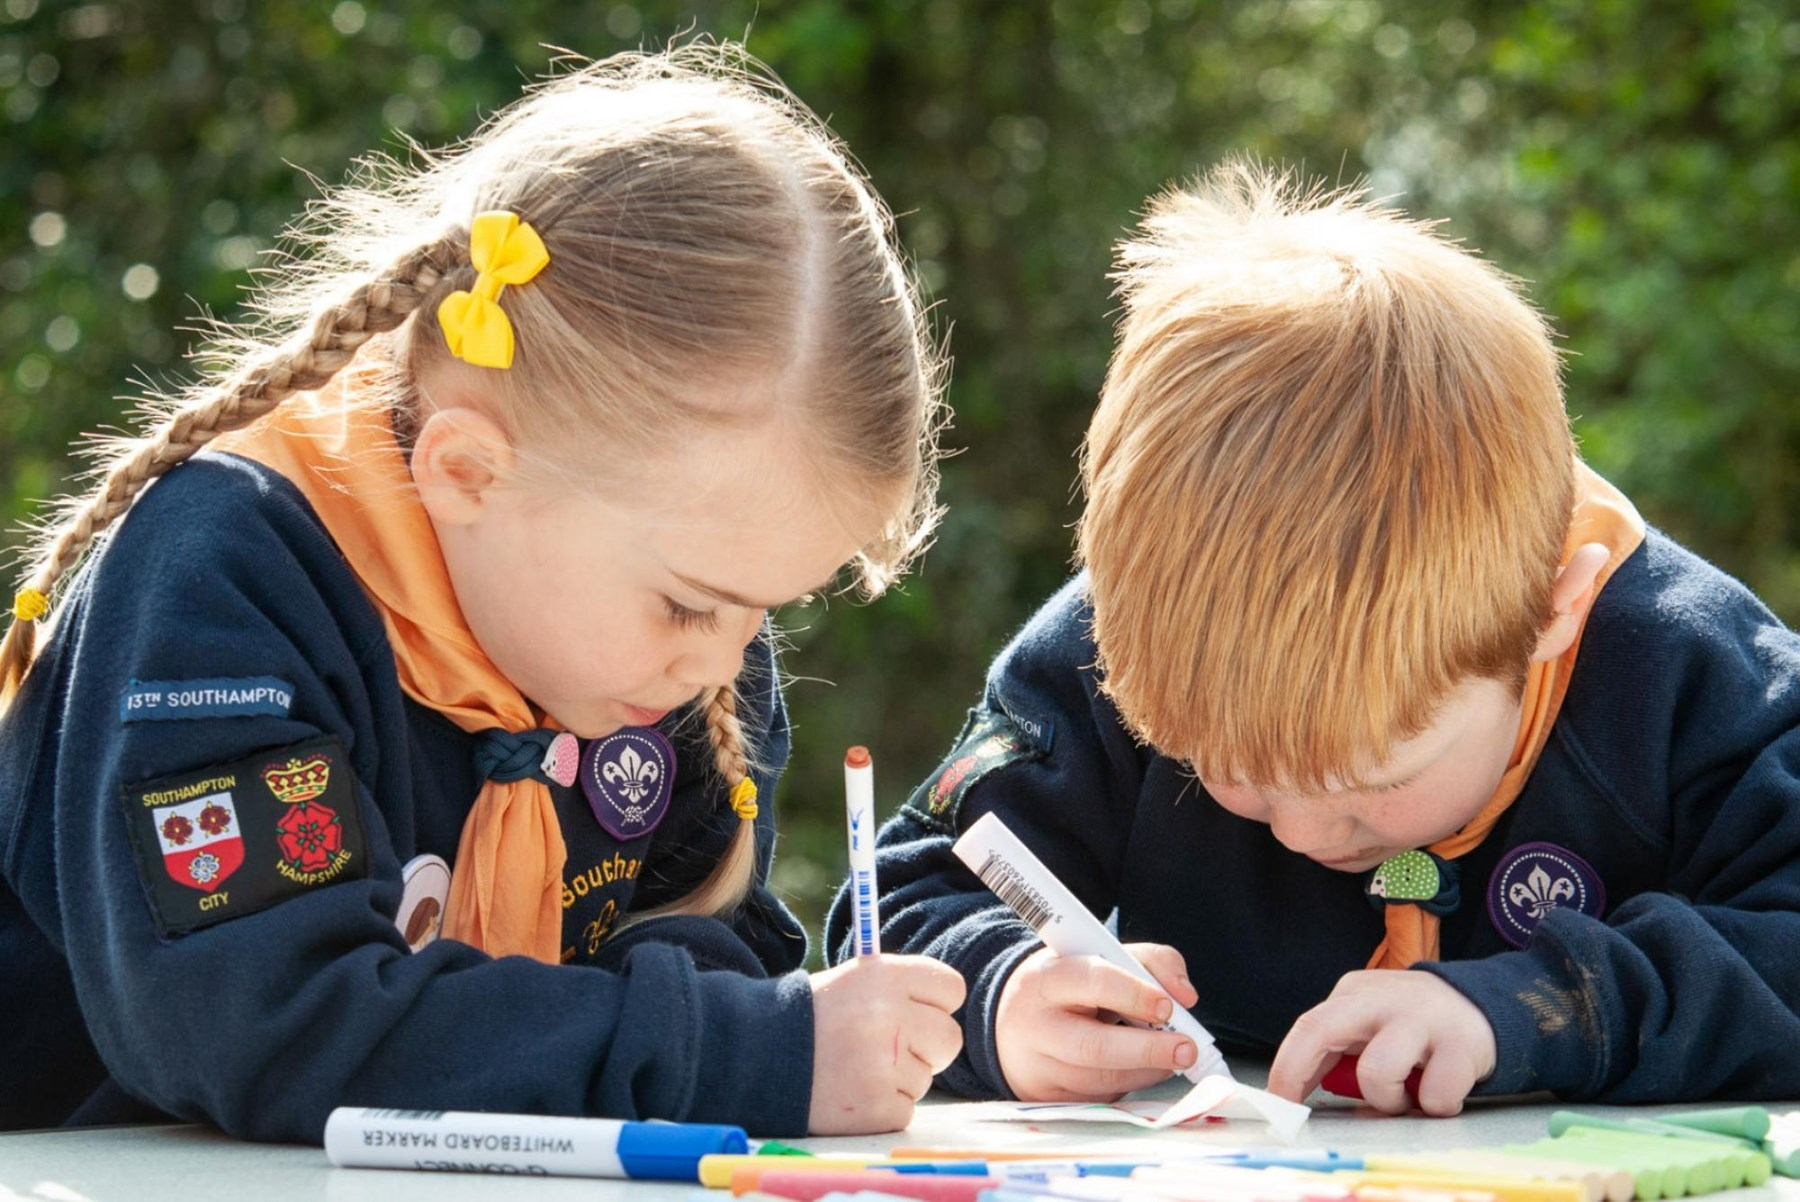 Two children using colouring pens